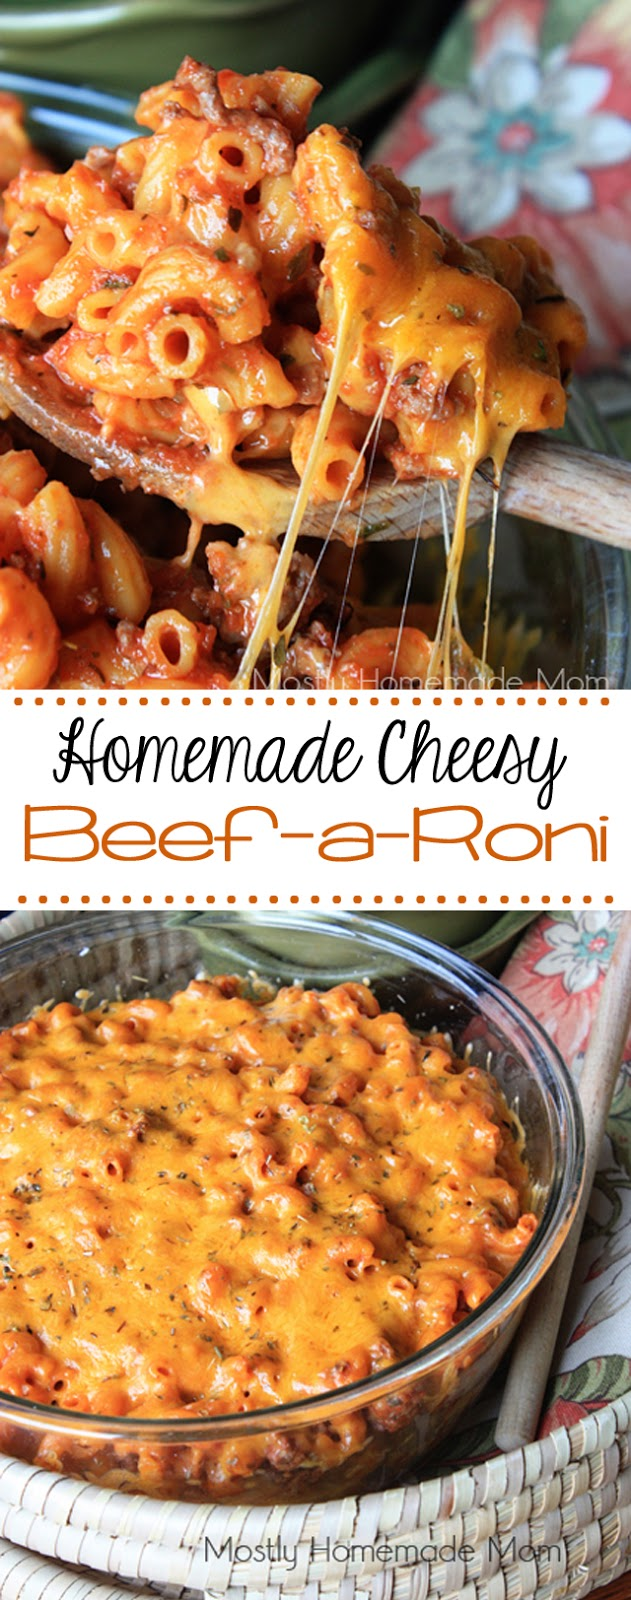 Homemade Cheesy Beefaroni – an amazing tomato meat sauce combined with elbow macaroni noodles and layers of gooey cheddar cheese –